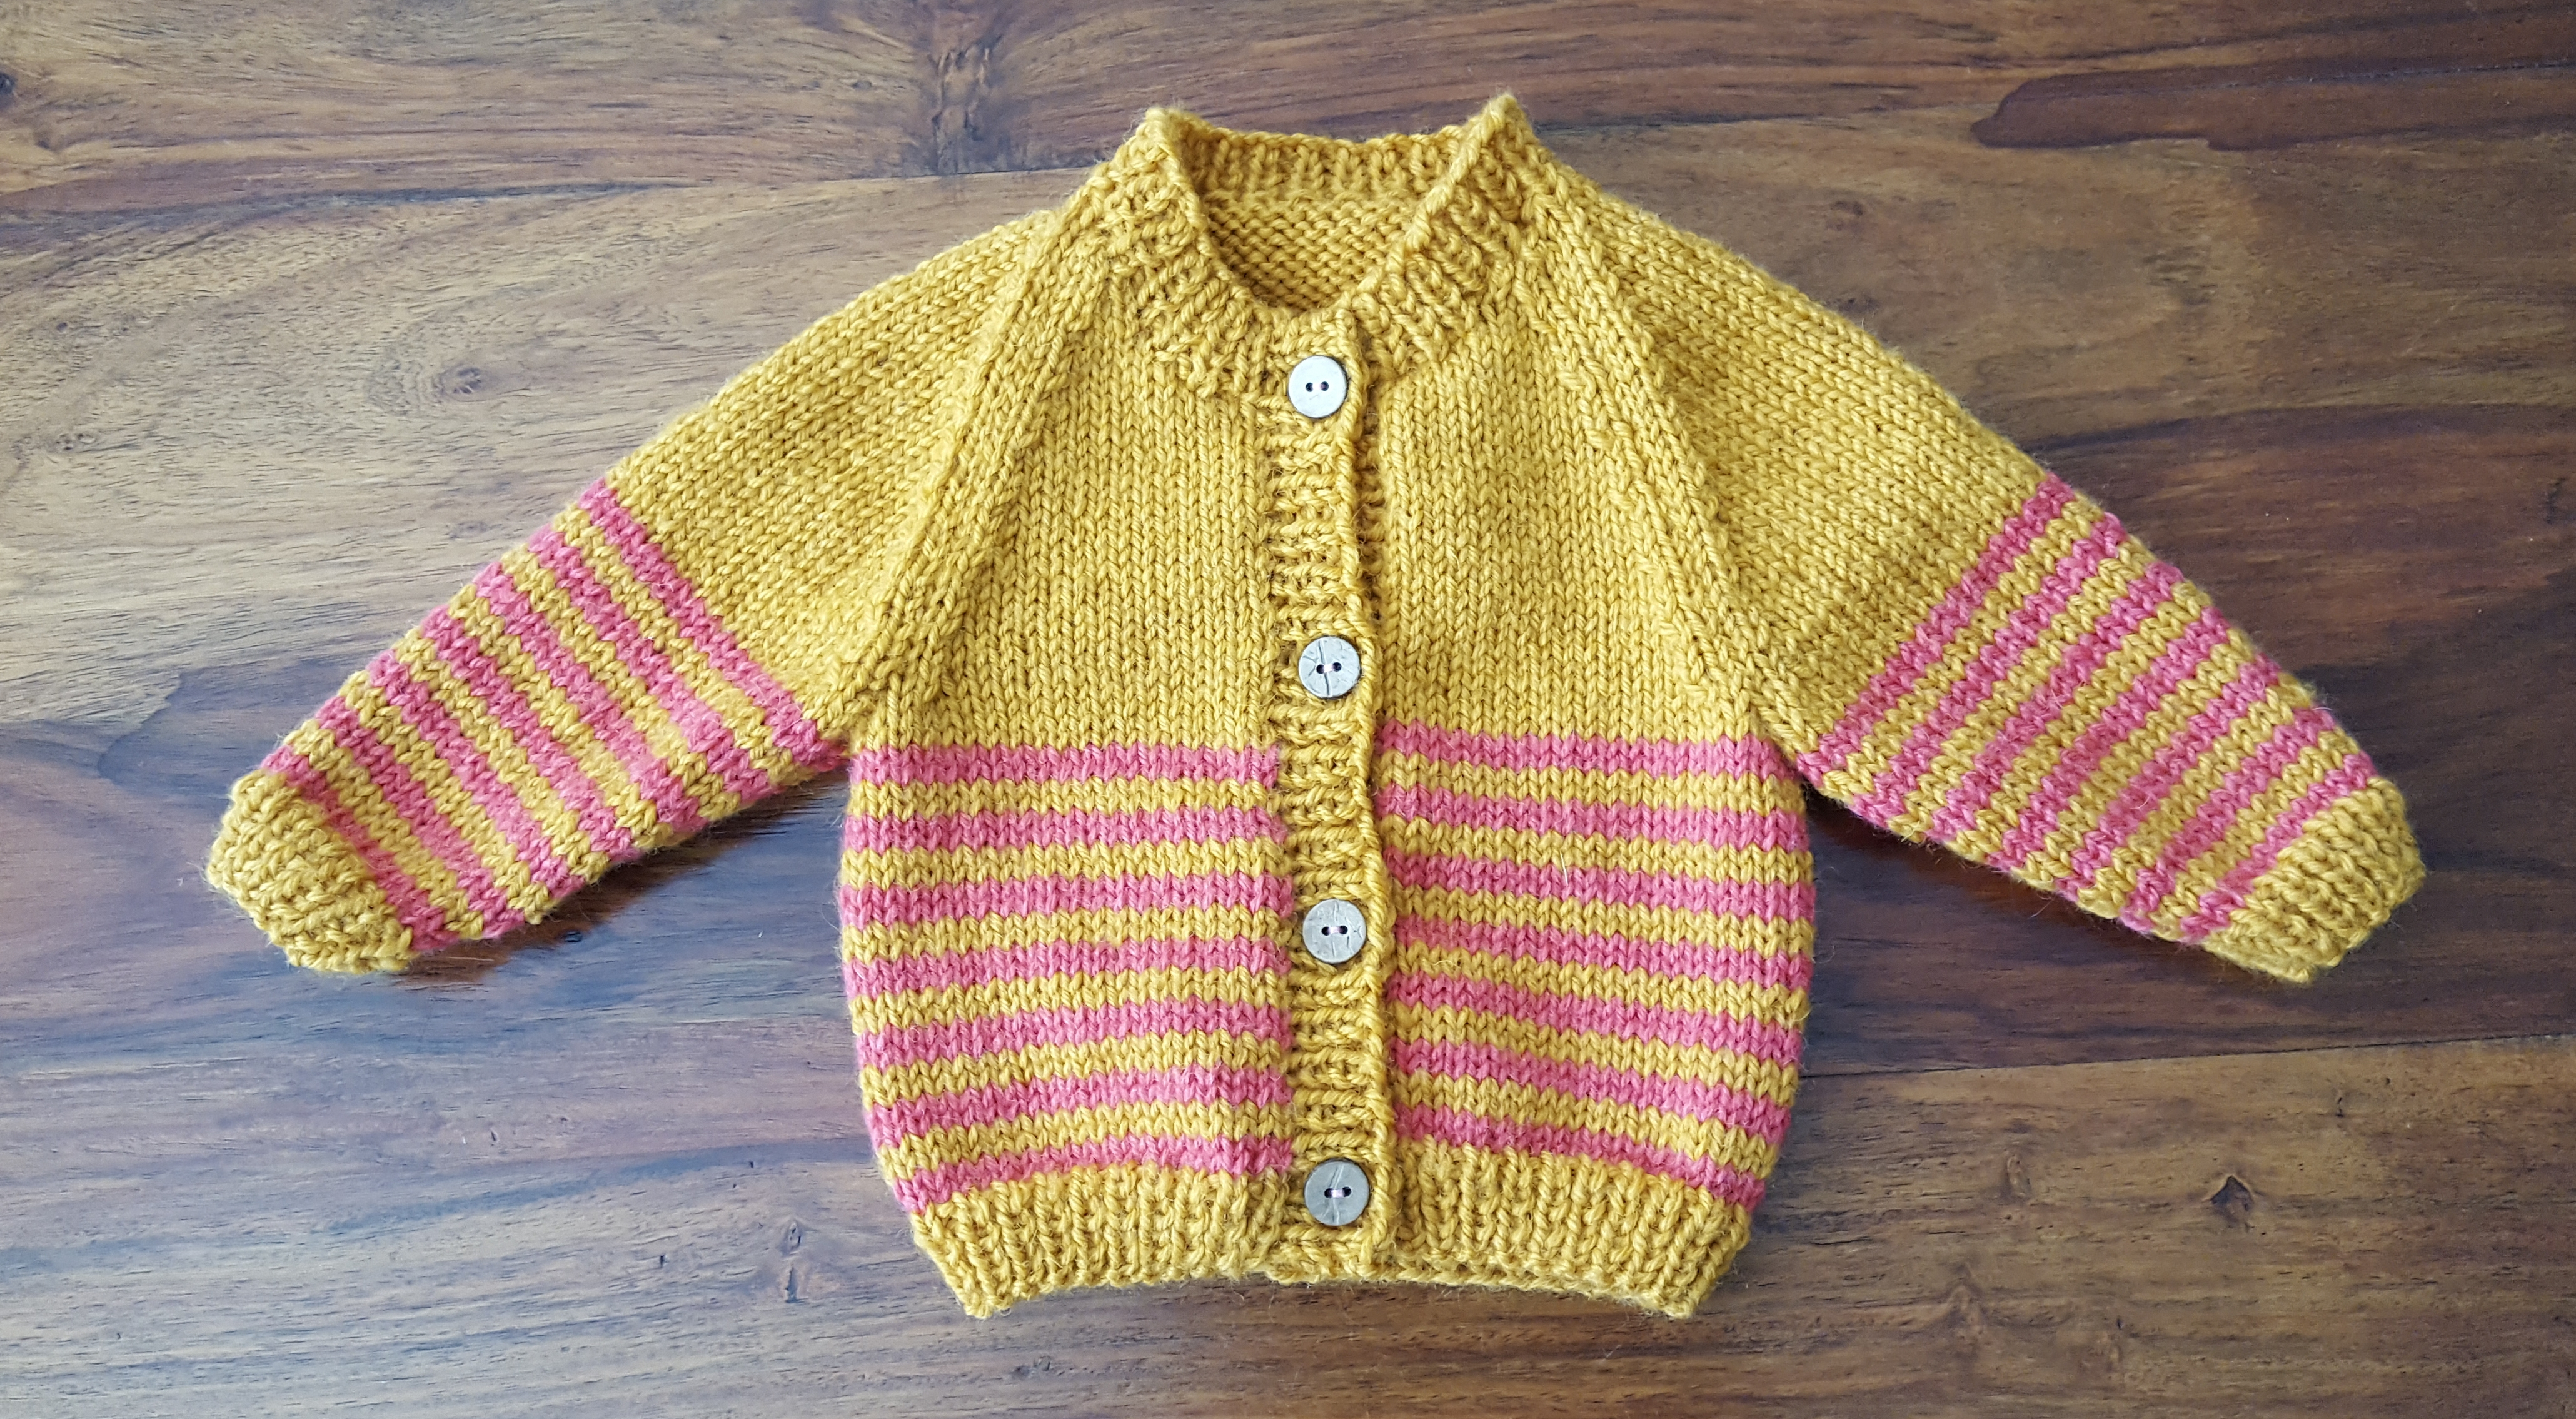 8 Ply Wool Knitting Patterns Knitting Patterns Online Knitting Patterns For Ba Clothes Juniper